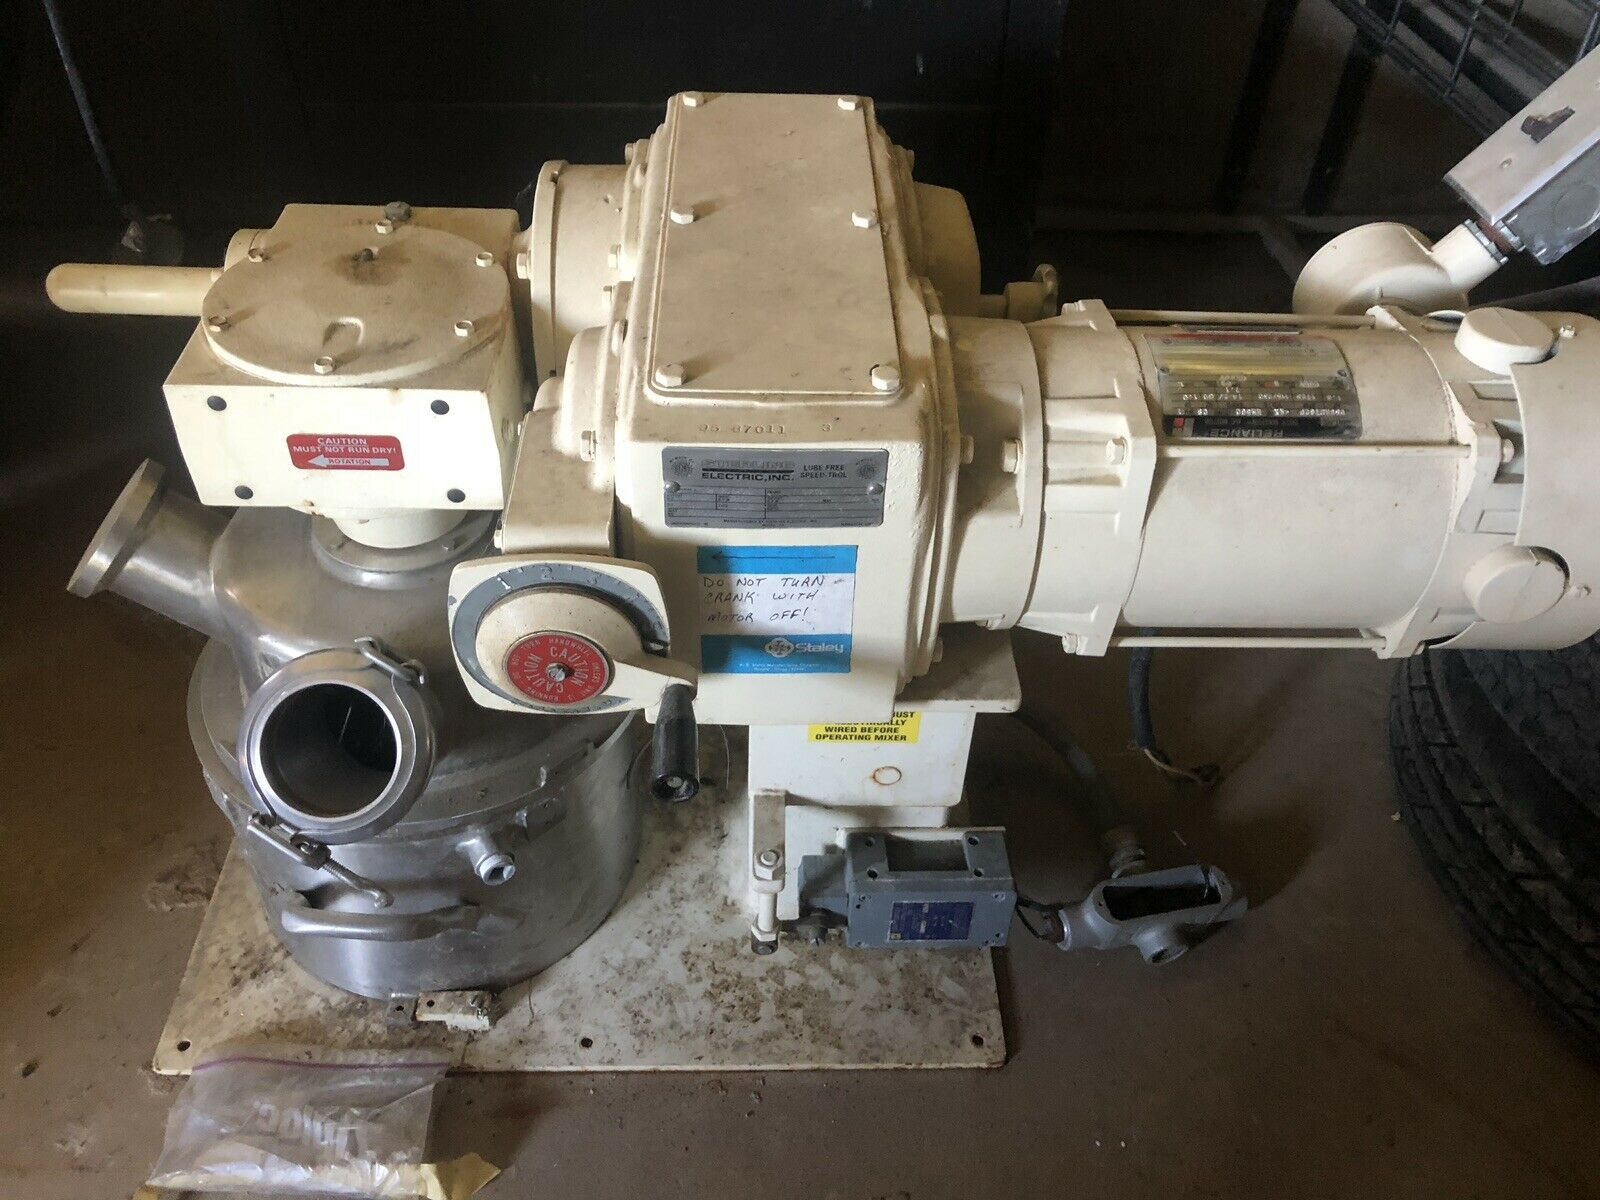 2 Gallon Ross Jacketed Vacuum Planetary Mixer, Sanitary S/S